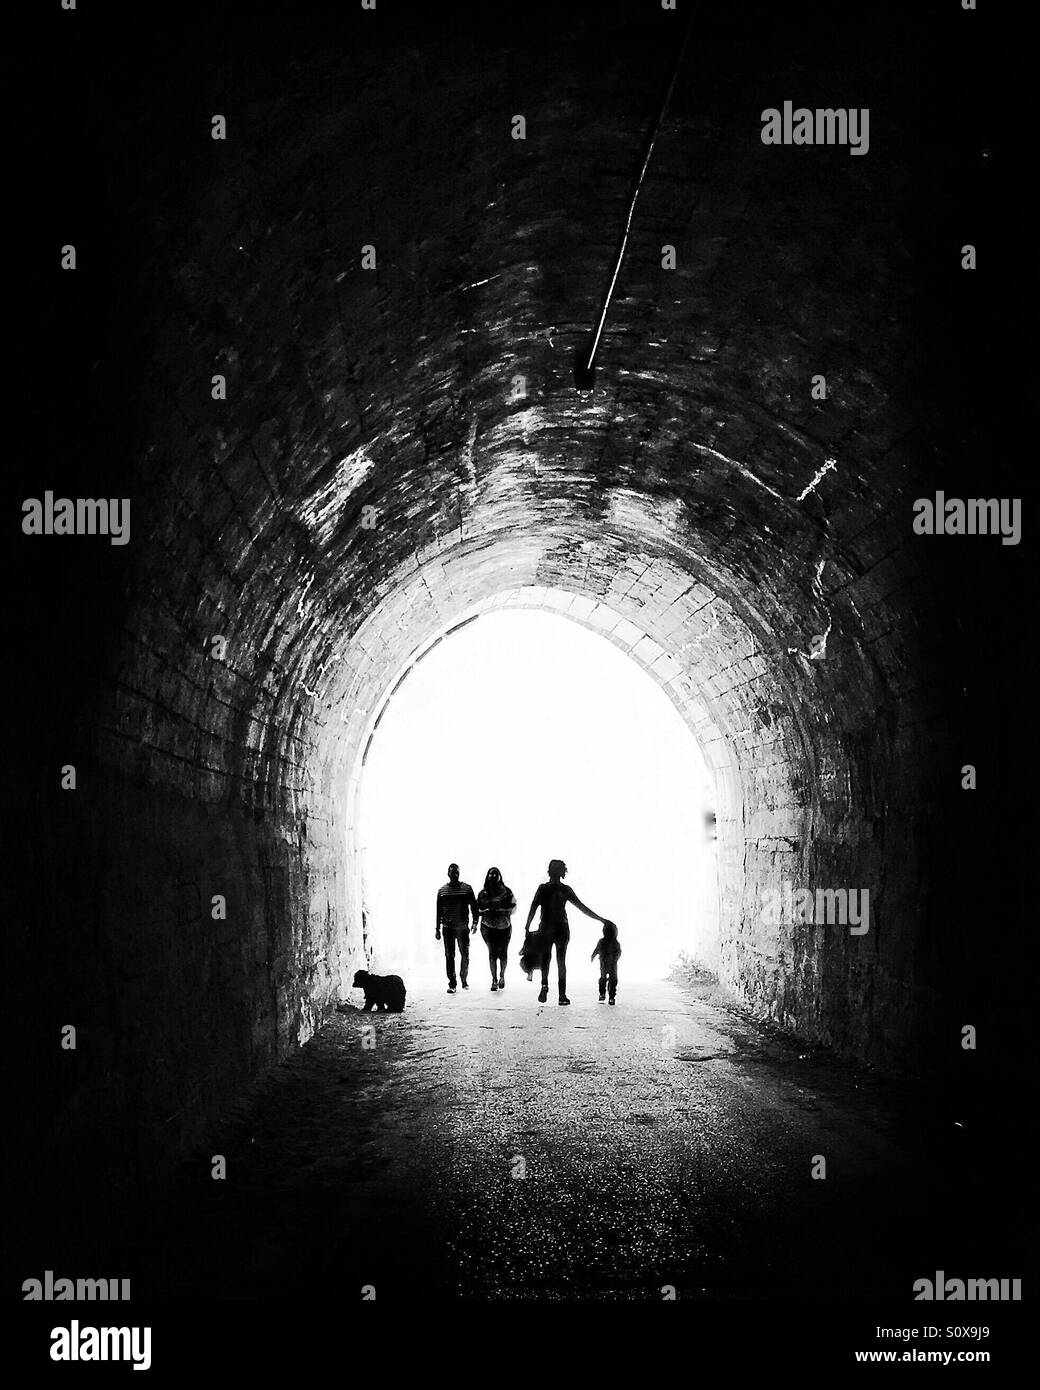 Walking is the last trend to be healthy, so people walk a lot to run away the light at the end of the tunnel. - Stock Image